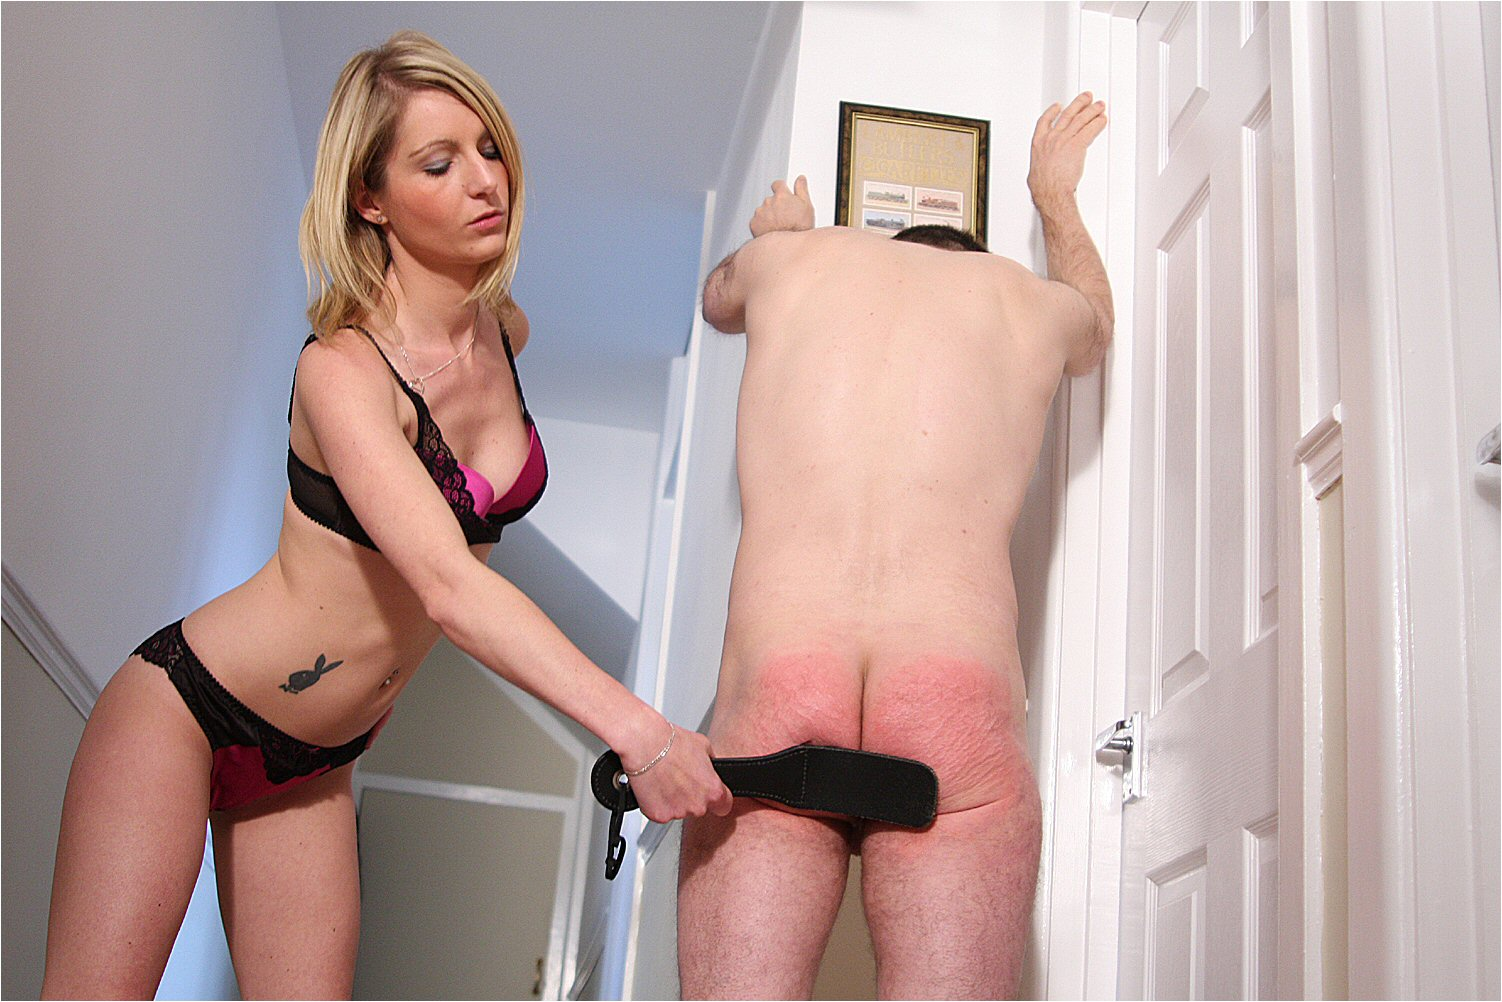 Whit girl Woman spank men thumbs not just